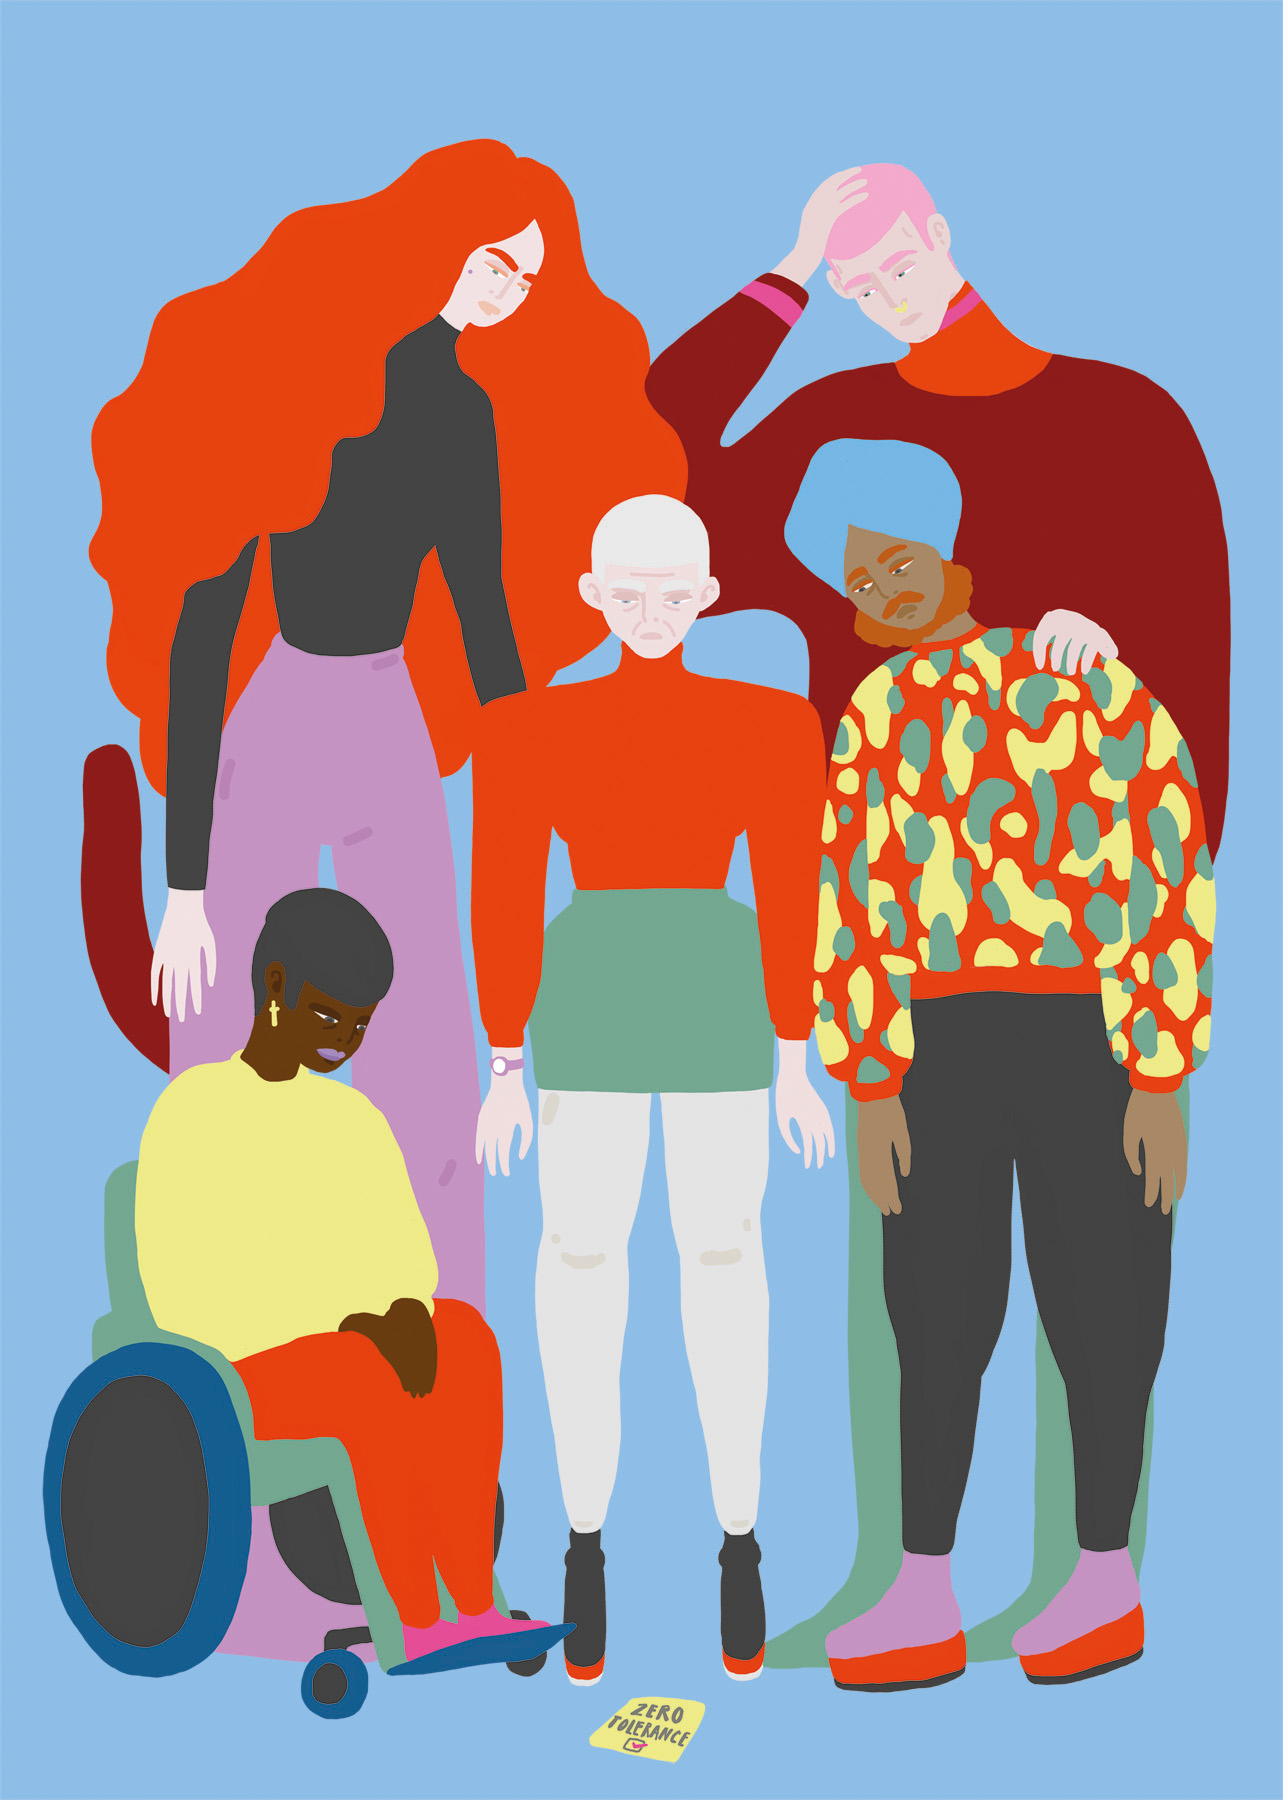 © Ibou Gueye 'Institutional responses to discrimination based on gender and race at Finnish universities', for ASTRA, Finnland 2018